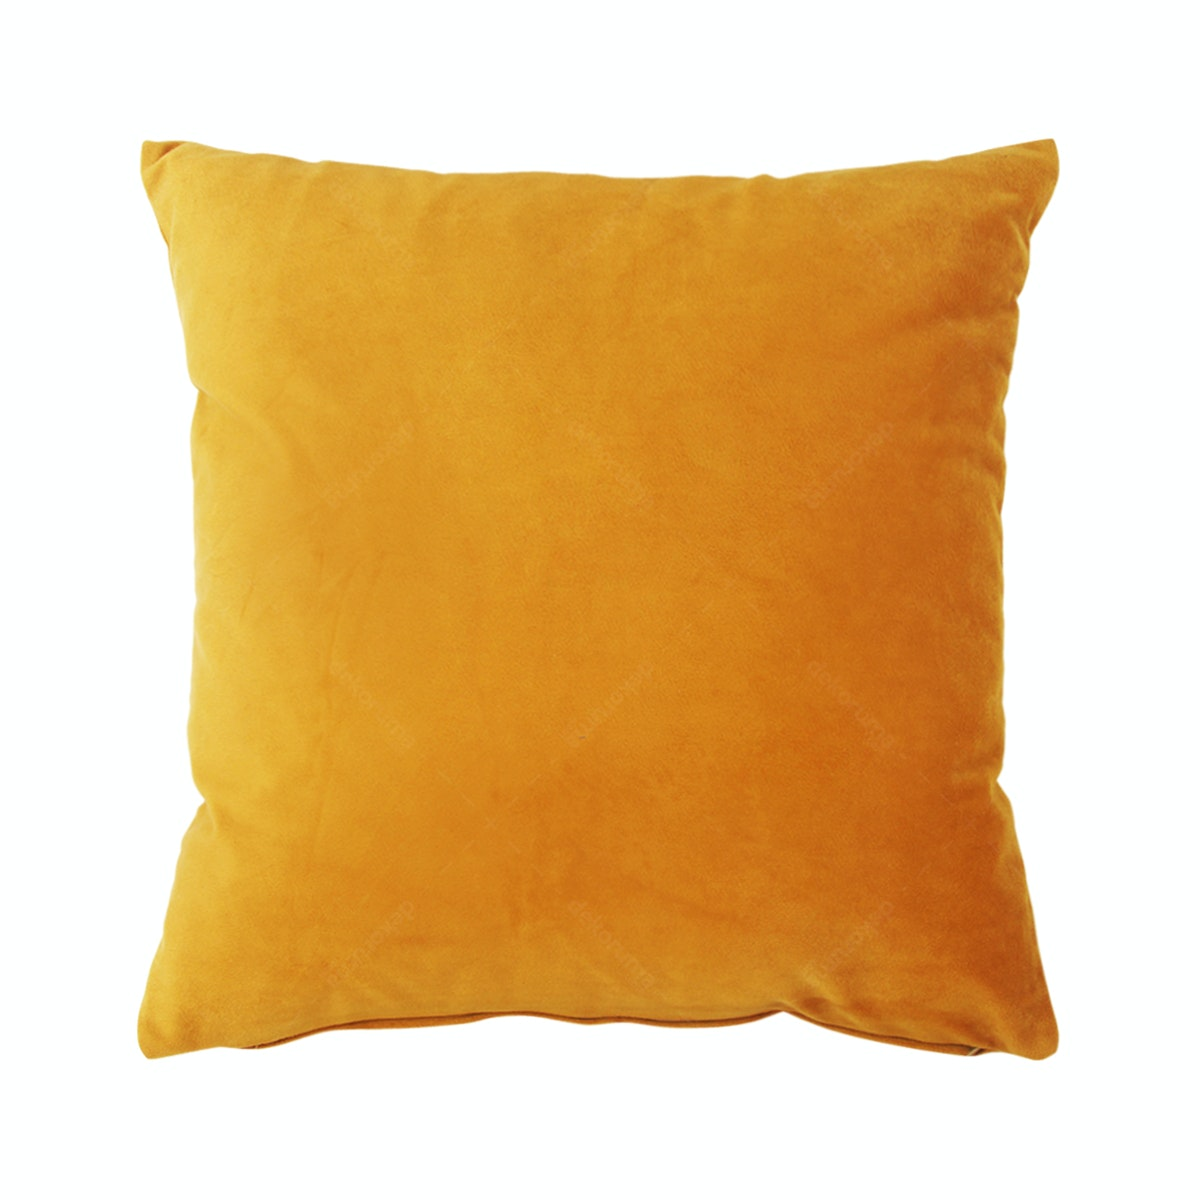 Le Atelier Glossy Gold Cushion Cover 45x45cm